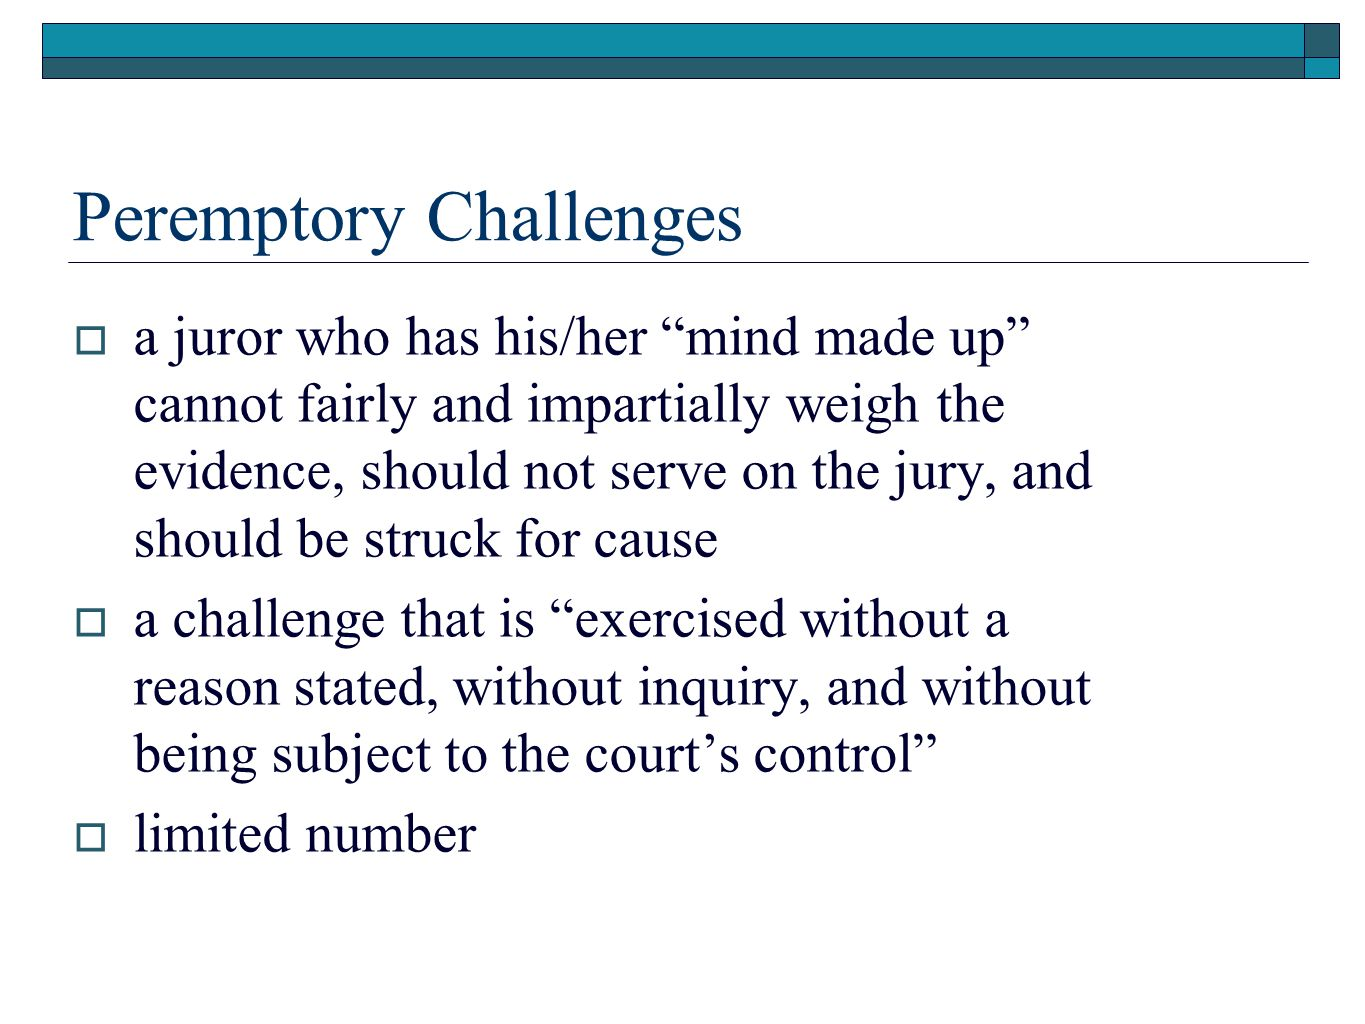 Peremptory Challenges  a juror who has his/her mind made up cannot fairly and impartially weigh the evidence, should not serve on the jury, and should be struck for cause  a challenge that is exercised without a reason stated, without inquiry, and without being subject to the court's control  limited number